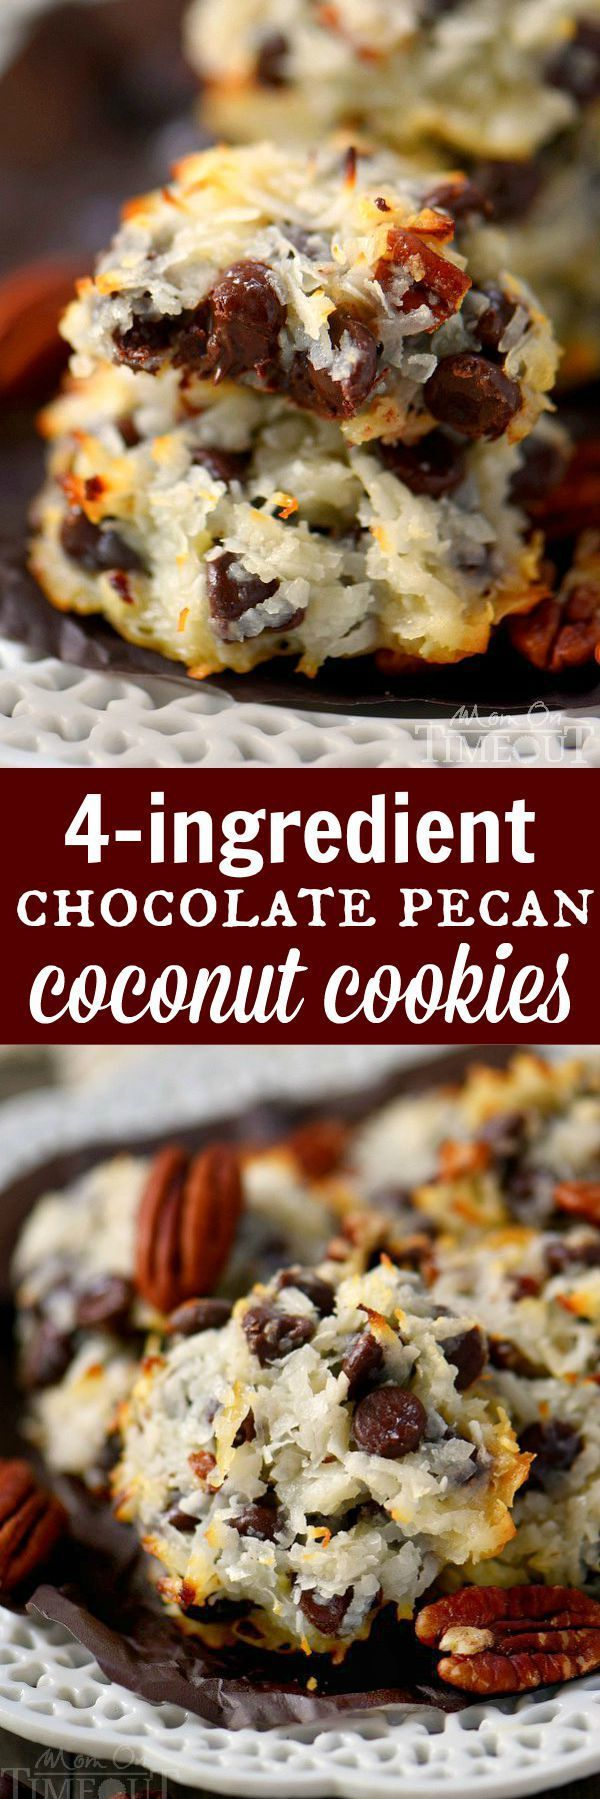 These delicious Chocolate Pecan Coconut Cookies take only 4 ingredients! Ooey gooey perfection that's impossible to resist! This easy recipe is one that you NEED to add to your repertoire! | eBay | #cookies